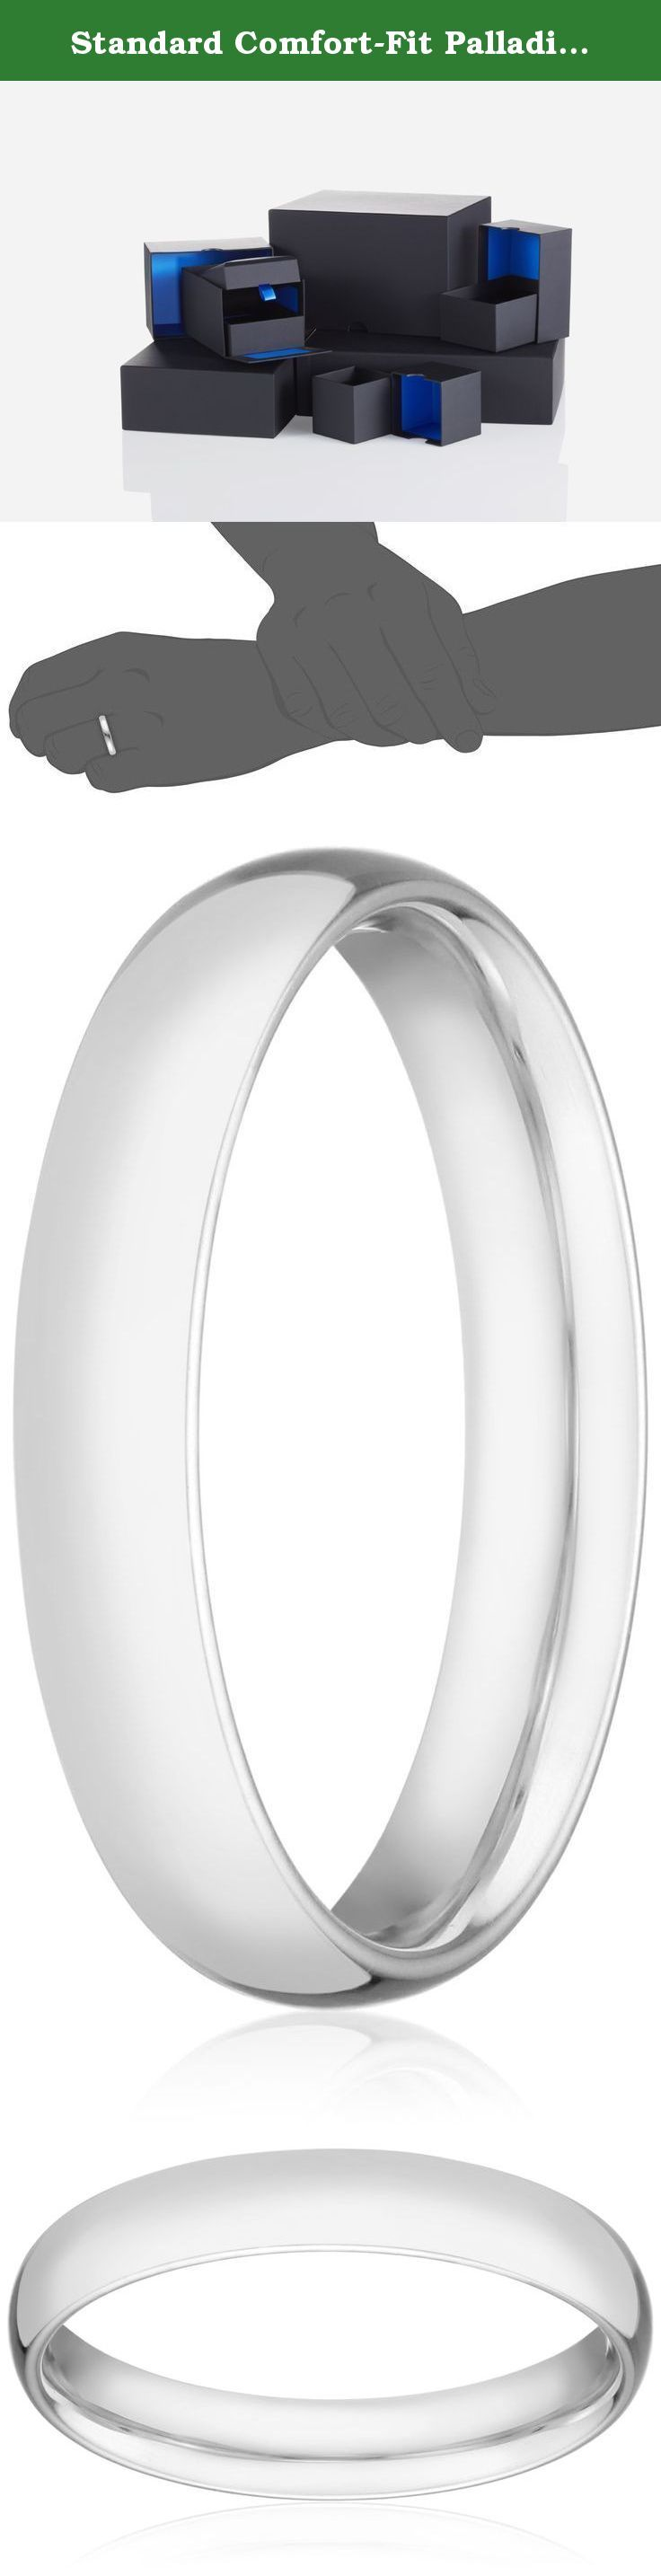 Standard Comfort-Fit Palladium Band, 4mm, Size 12. With its sleek metallic design, the Men's Palladium Comfort Fit Wedding Band Ring with Luxury High Polish is a classic piece he will enjoy wearing every day. This ring is 4mm in width and is polished to reveal incredible shine. Embracing comfort-fit design, the band grants relaxing wear from day to night. Crafted out of Palladium, a white precious metal from the platinum group, it is a quality accessory that will last.